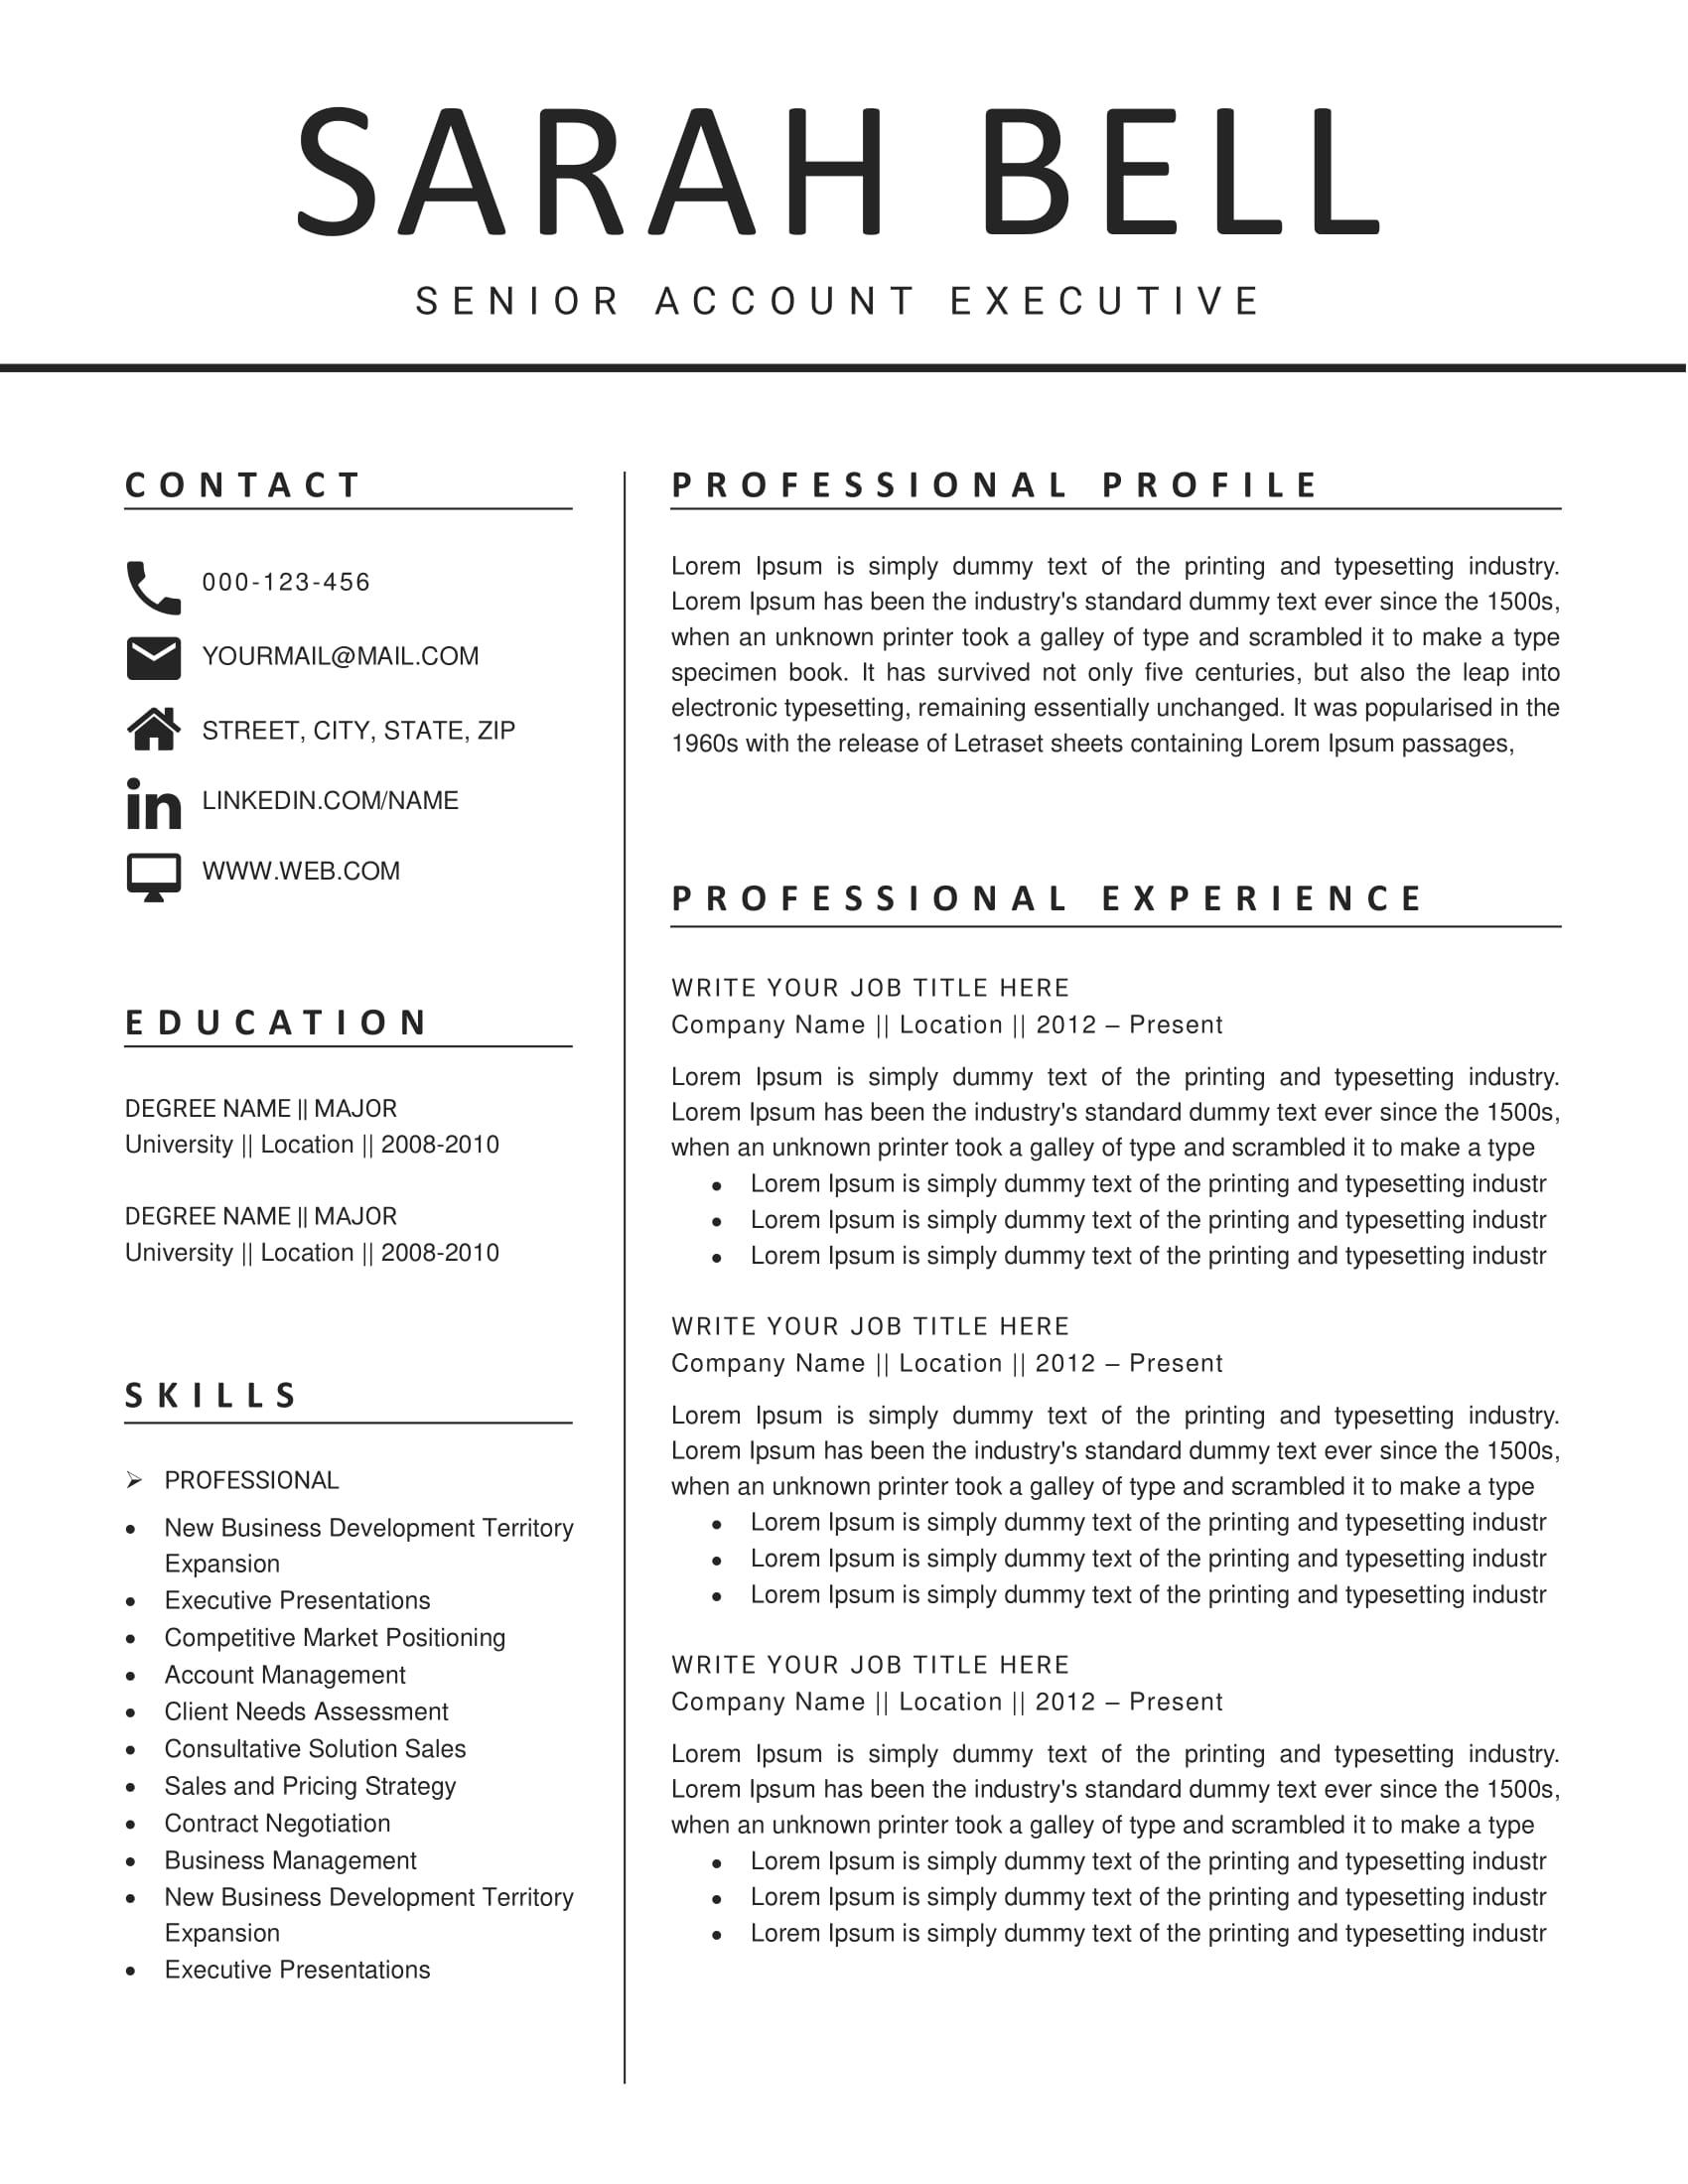 Clean Resume Design 26